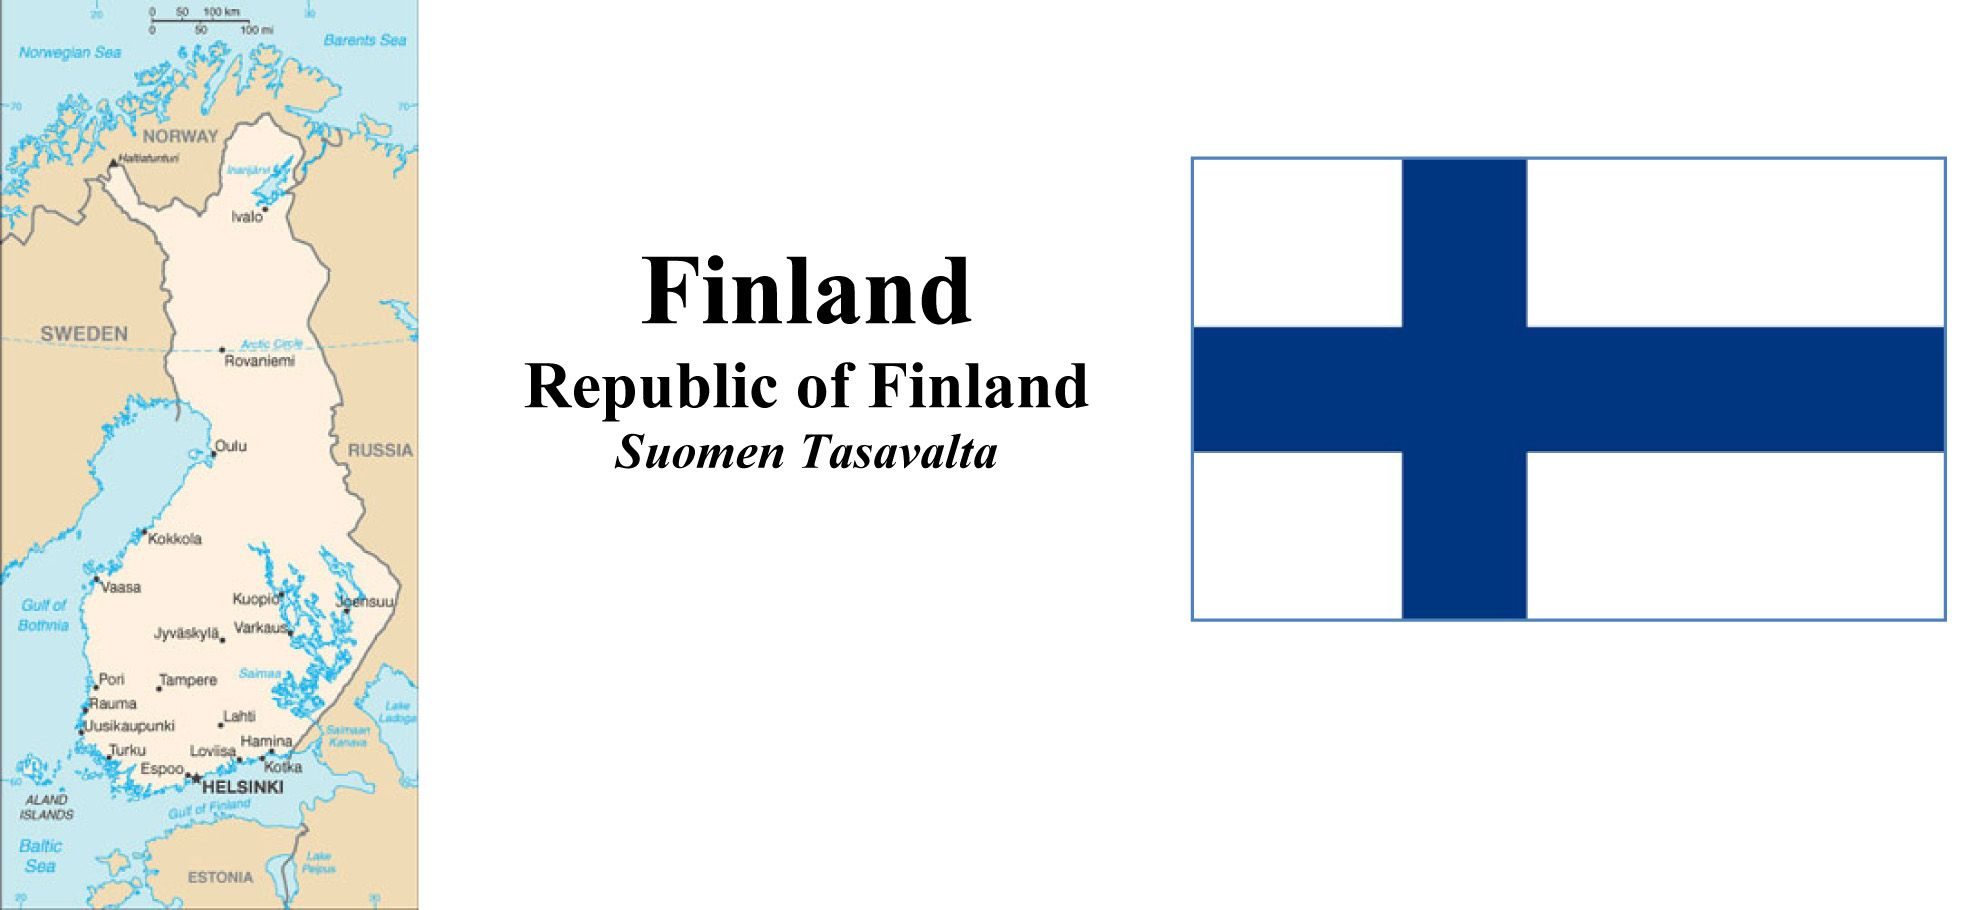 Map and Flga of Finland